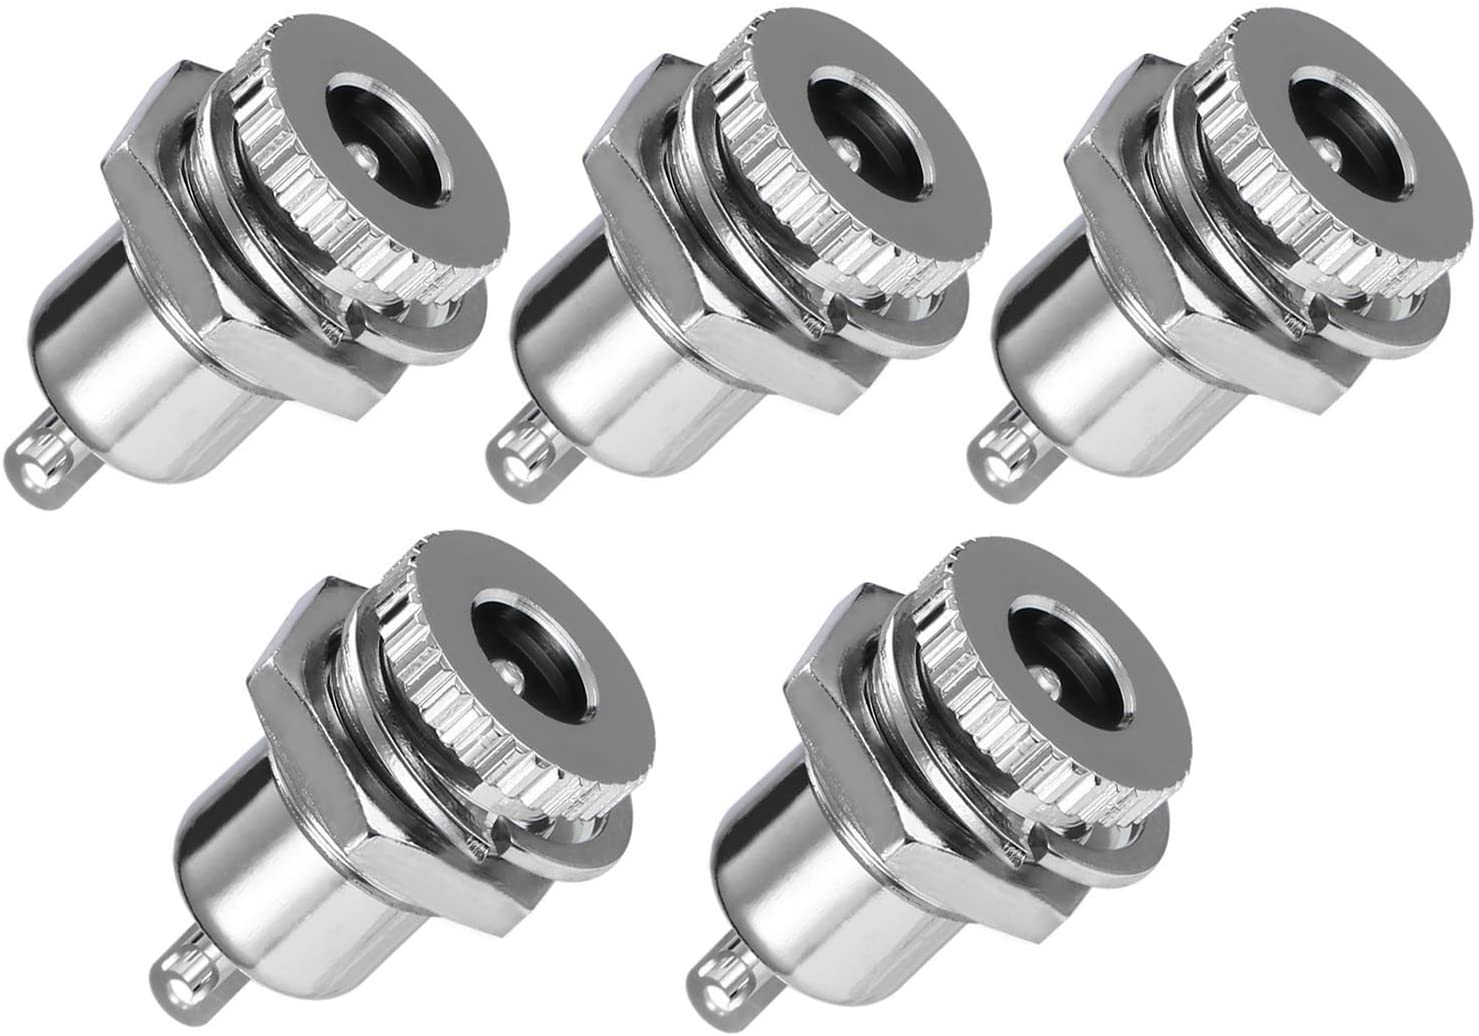 E-outstanding 5-Pack DC-099 5.5 mm x 2.1mm 30V 10A DC Power Jack Socket,Threaded Female Panel Mount Connector Adapter